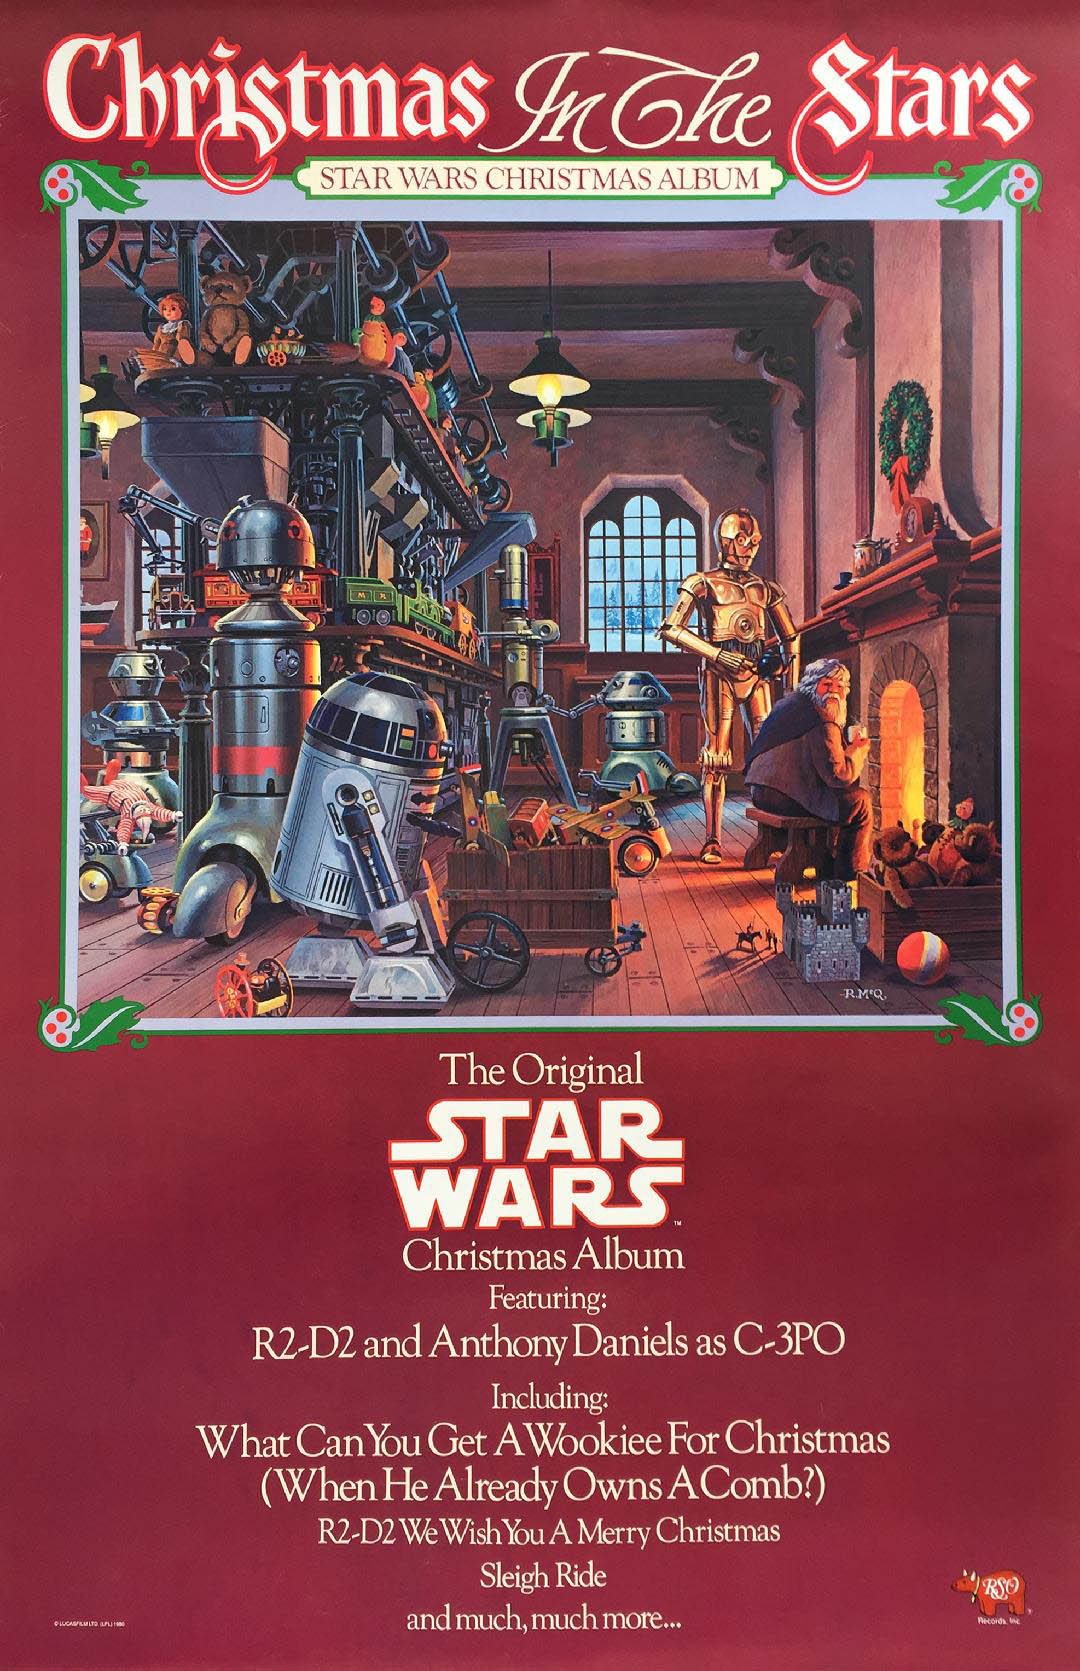 A poster for the album Christmas in the Stars.